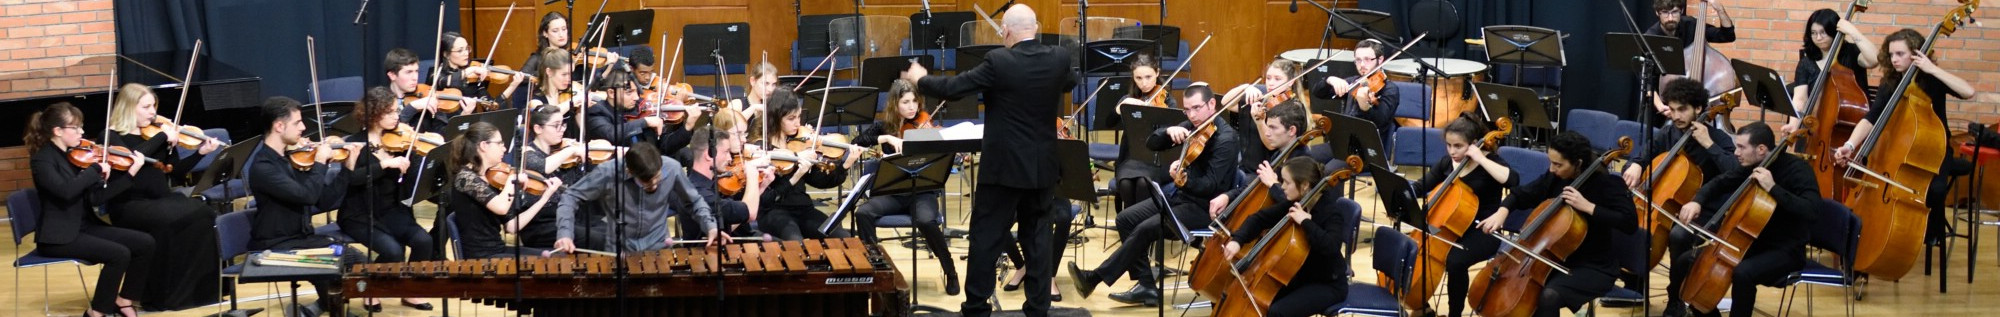 JAMD Opening Concert of the Mendi Rodan Symphony Orchestra